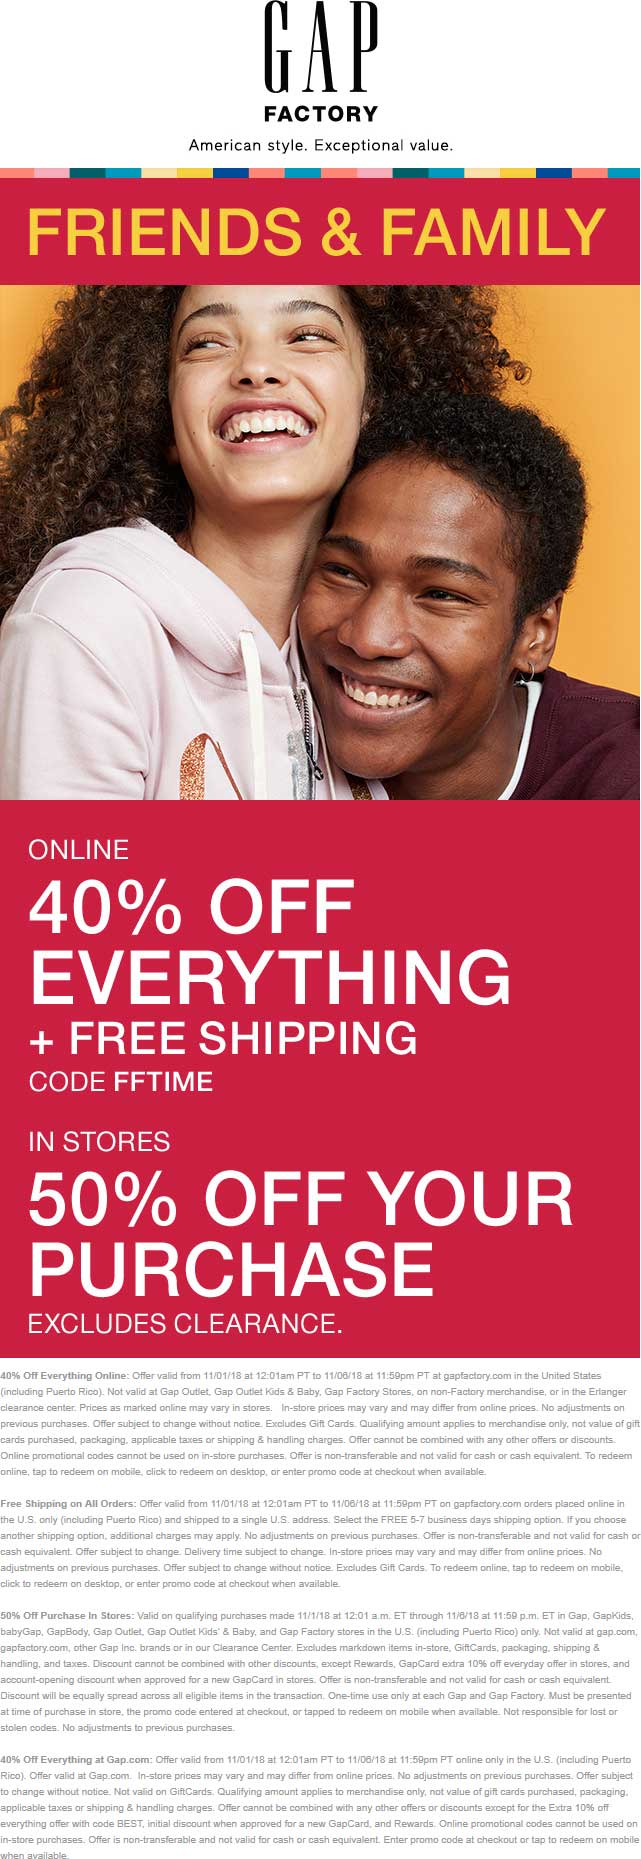 Gap Factory Coupon October 2019 50% off at Gap Factory, or 40% online via promo code FFTIME